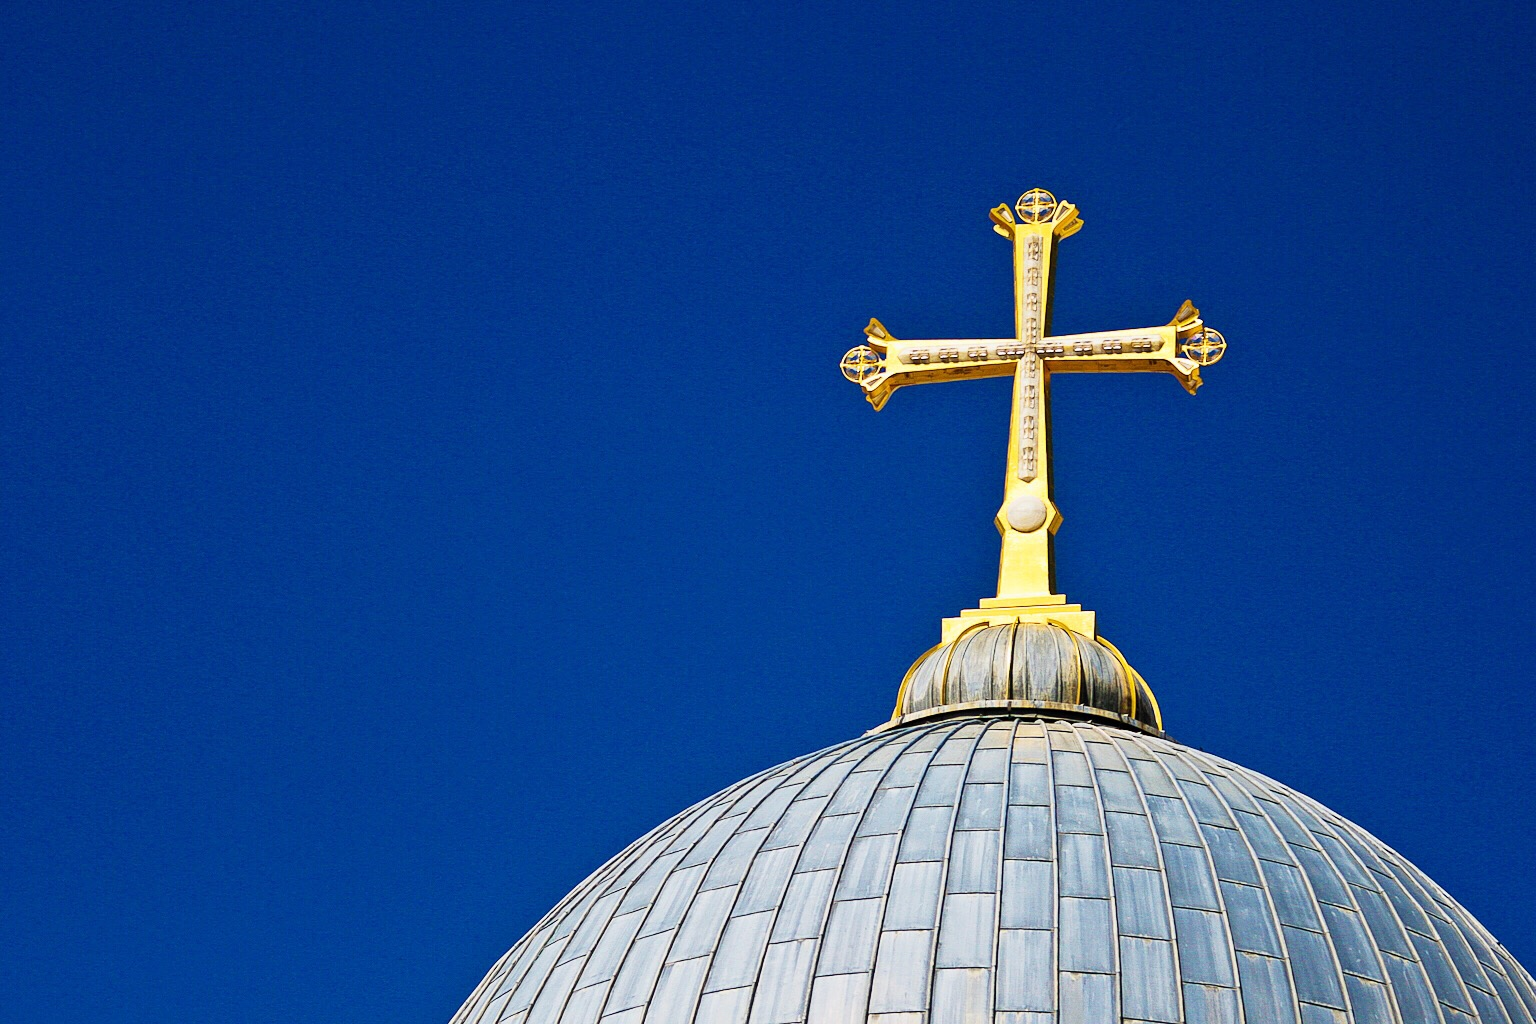 The Catholicon Cross (Church of the Holy Sepulchre, Jerusalem)